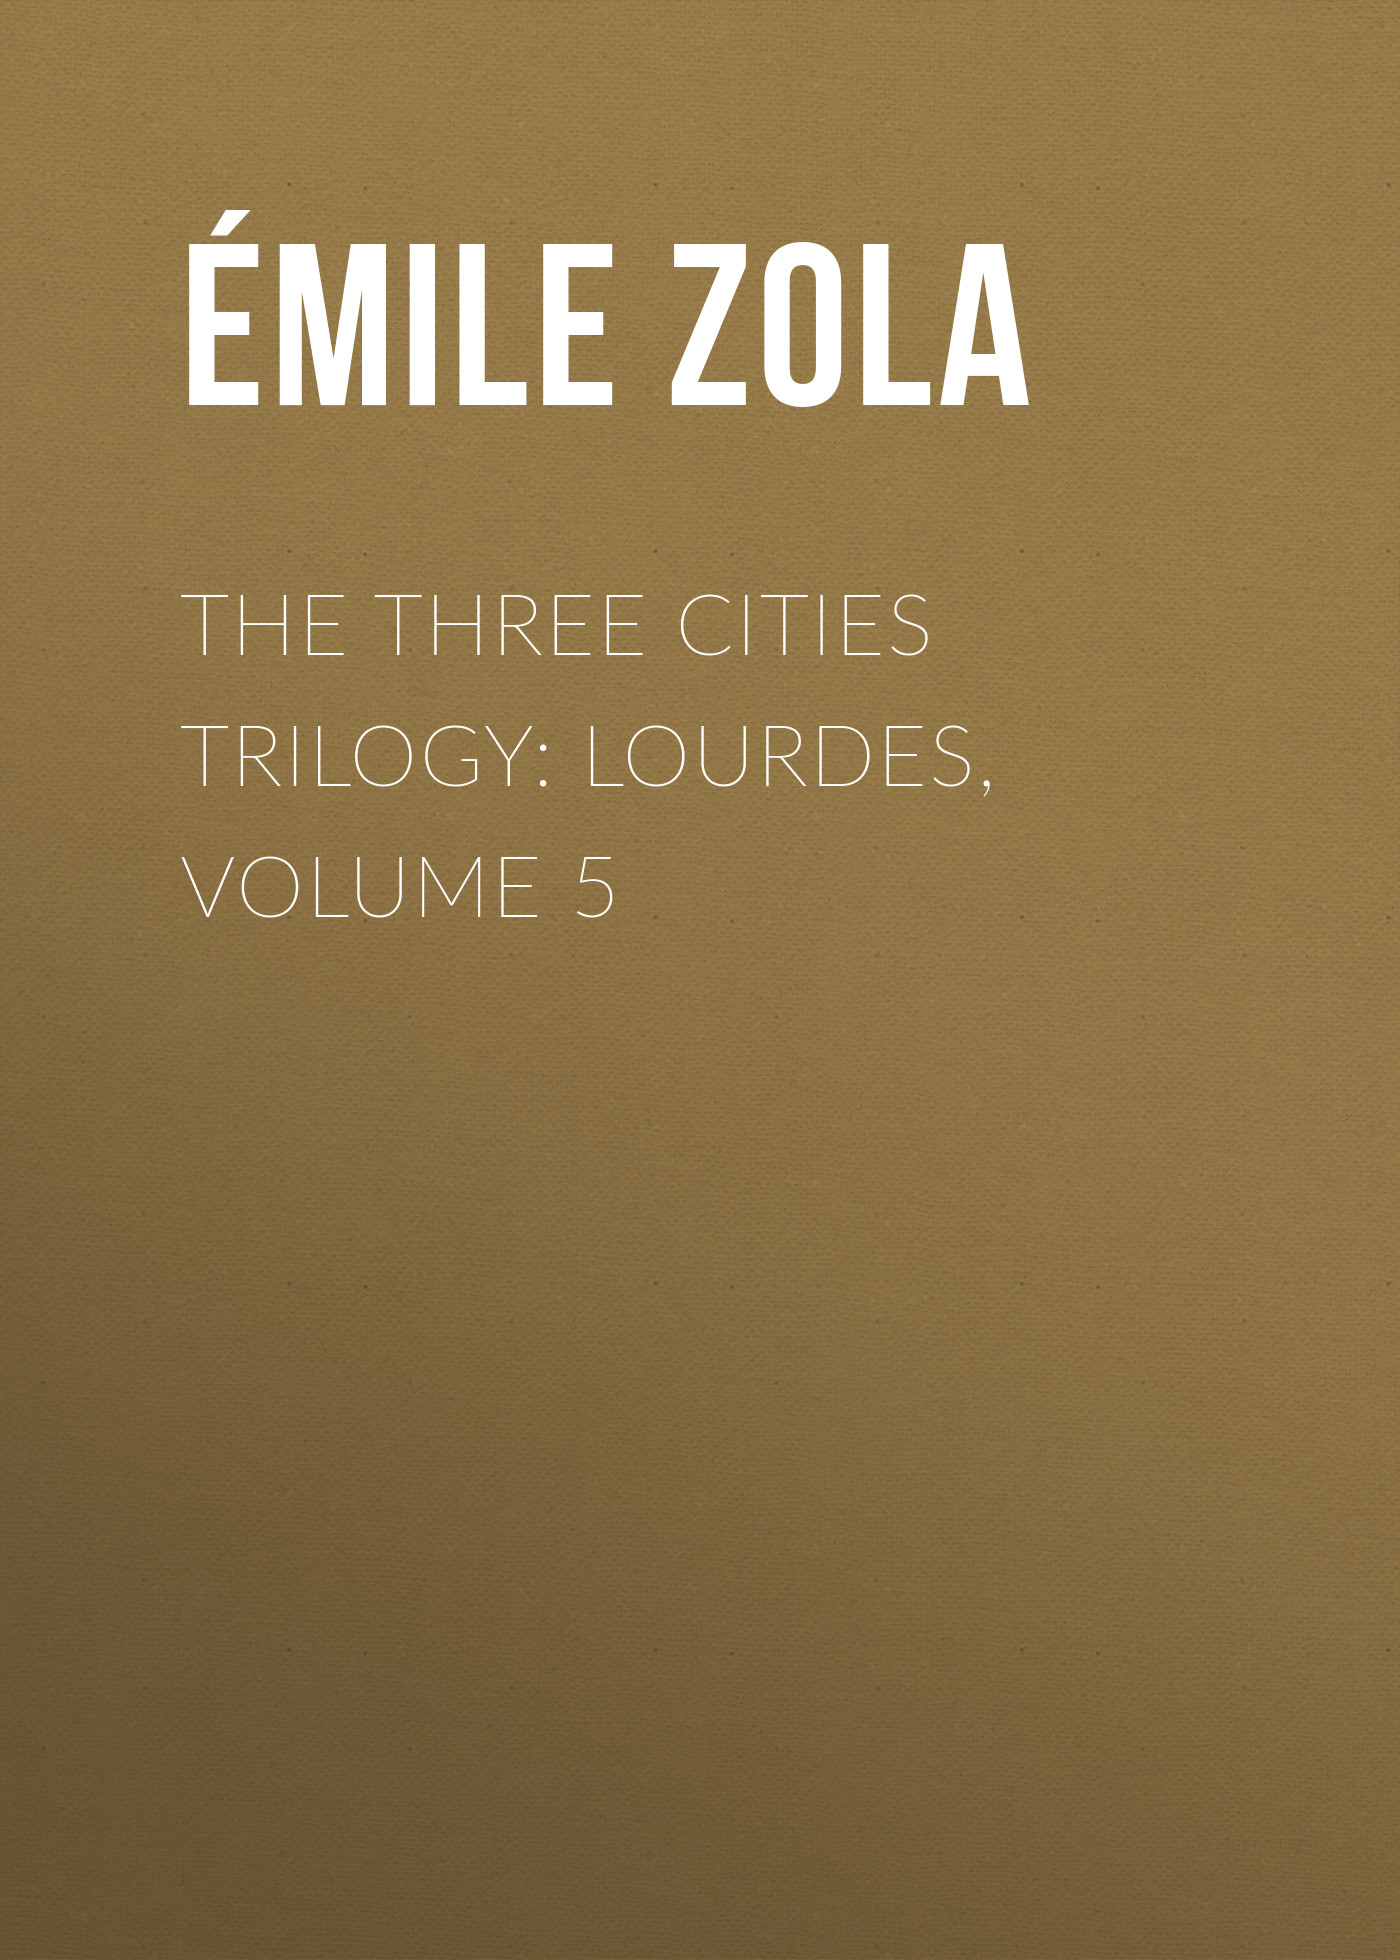 the three cities trilogy lourdes volume 5